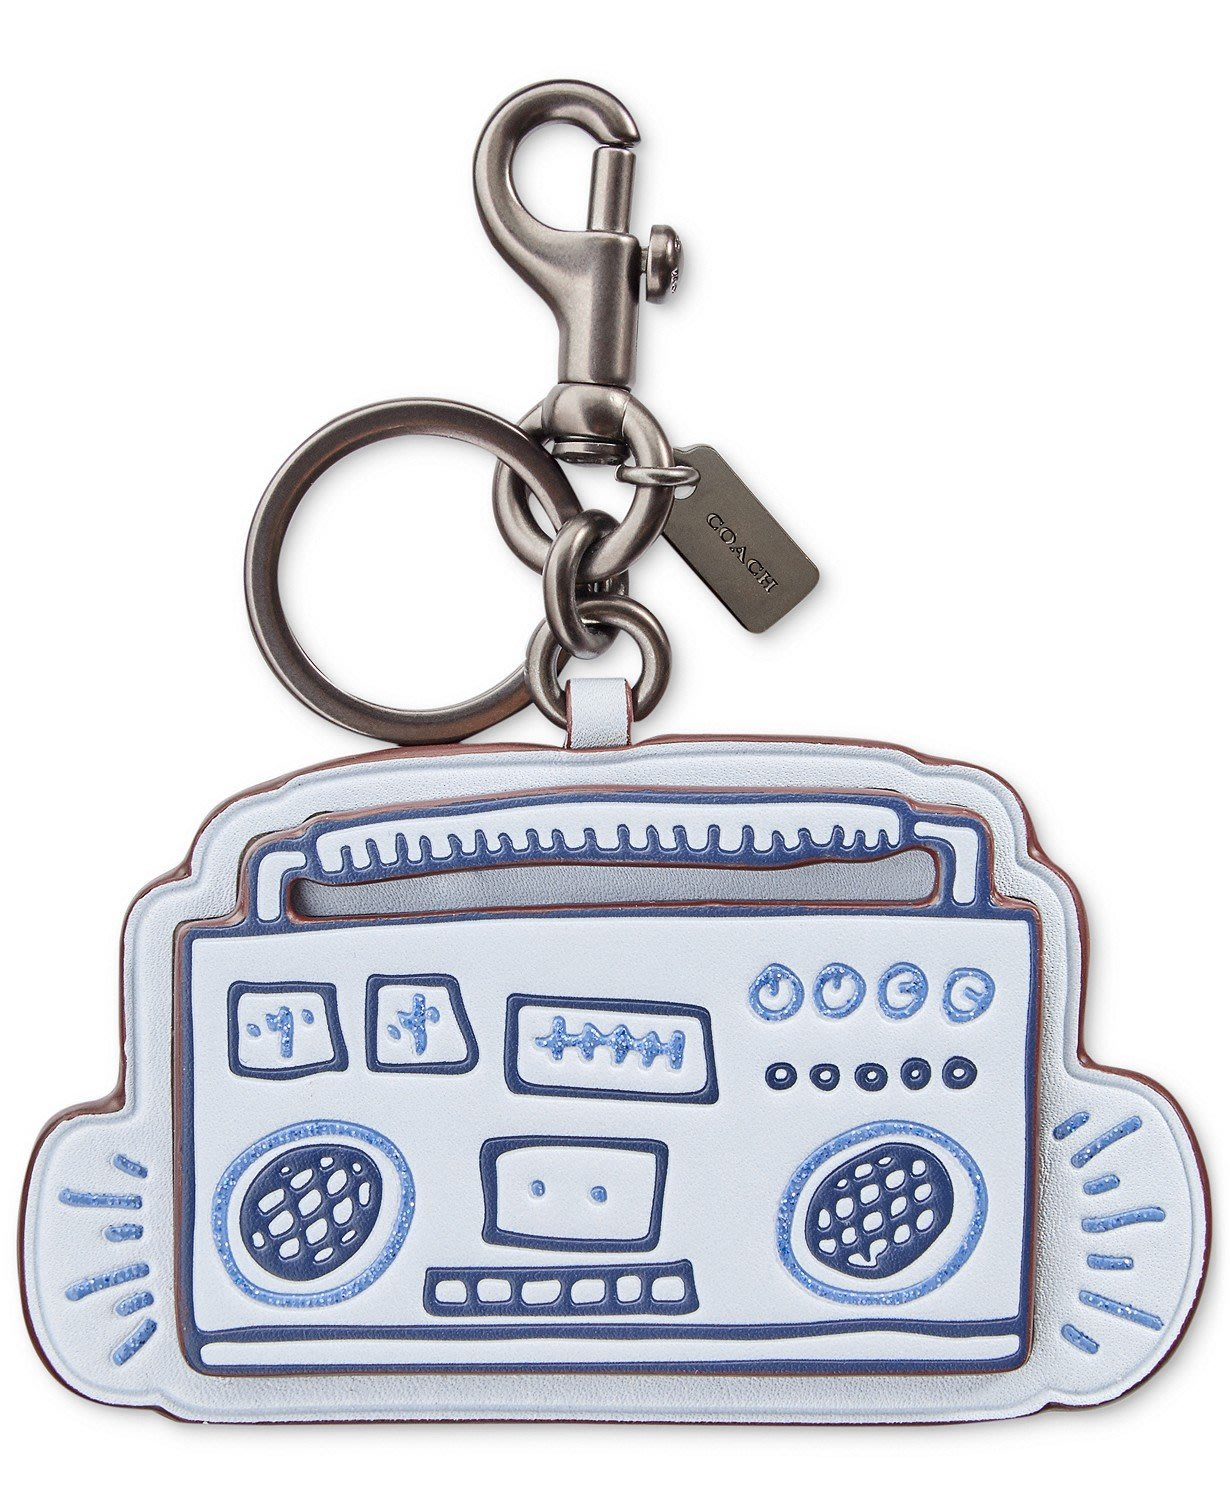 Coco小舖Coco小舖COACH 28583 Keith Haring Boombox Bag Charm  音箱吊飾